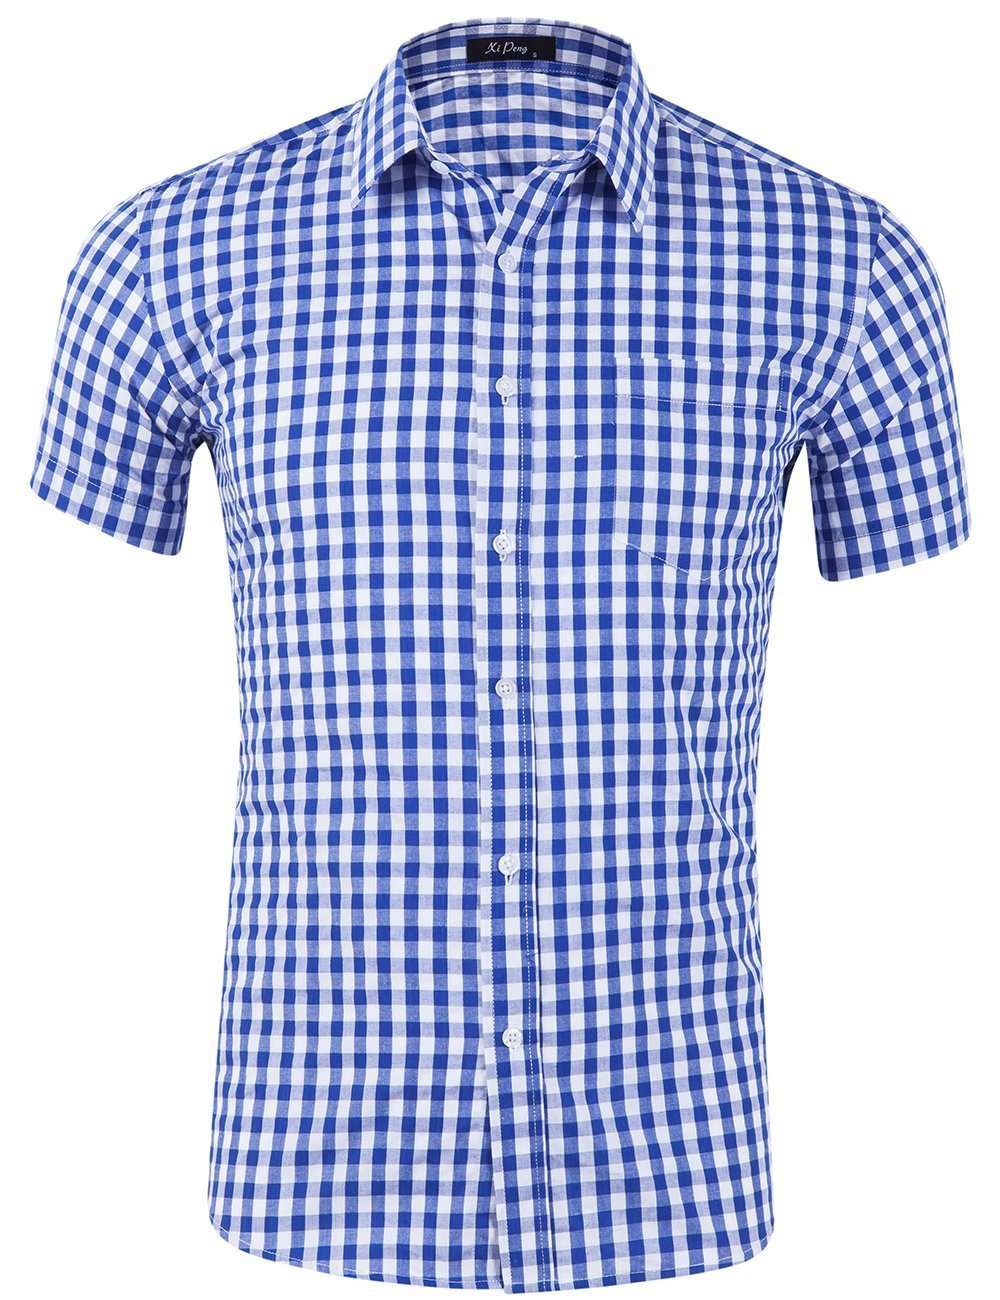 XI PENG Men's Casual Cotton Plaid Checkered Gingham Short Sleeve Dress Shirts(Royal Blue Checked, X-Large)